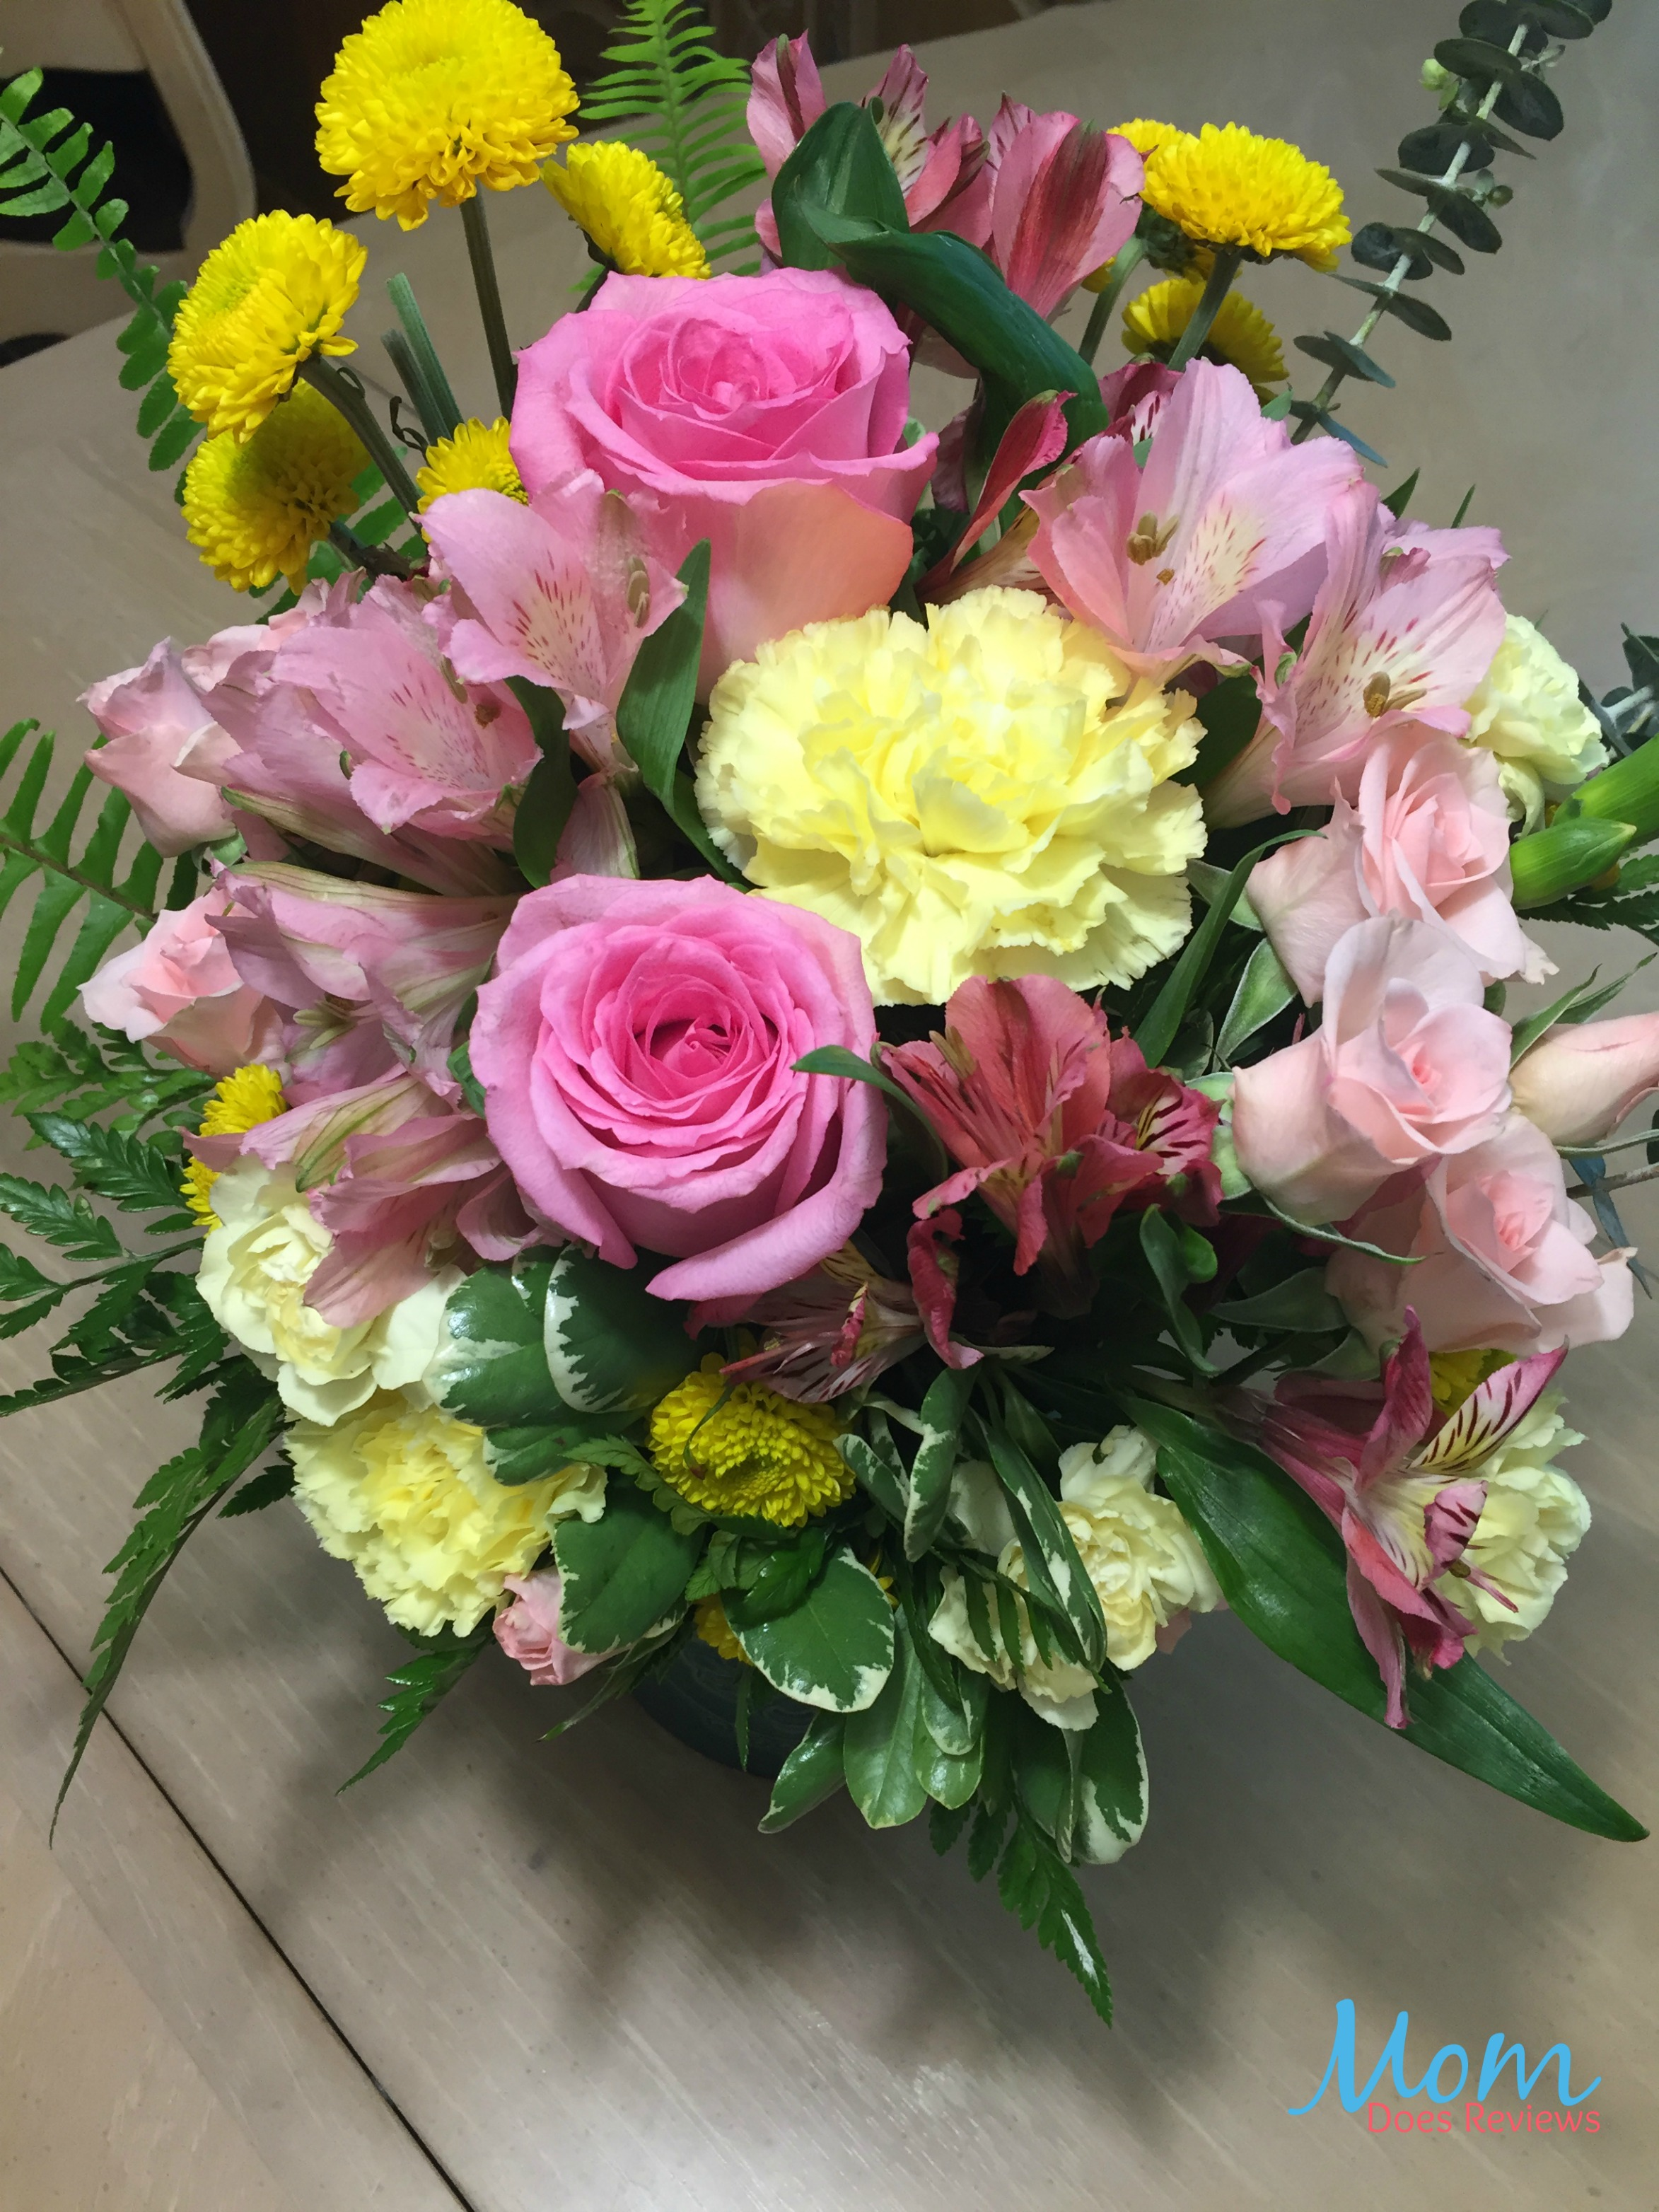 Give Your Mom a Teleflora Bouquet This Mother\'s Day #Giftsformom18 -